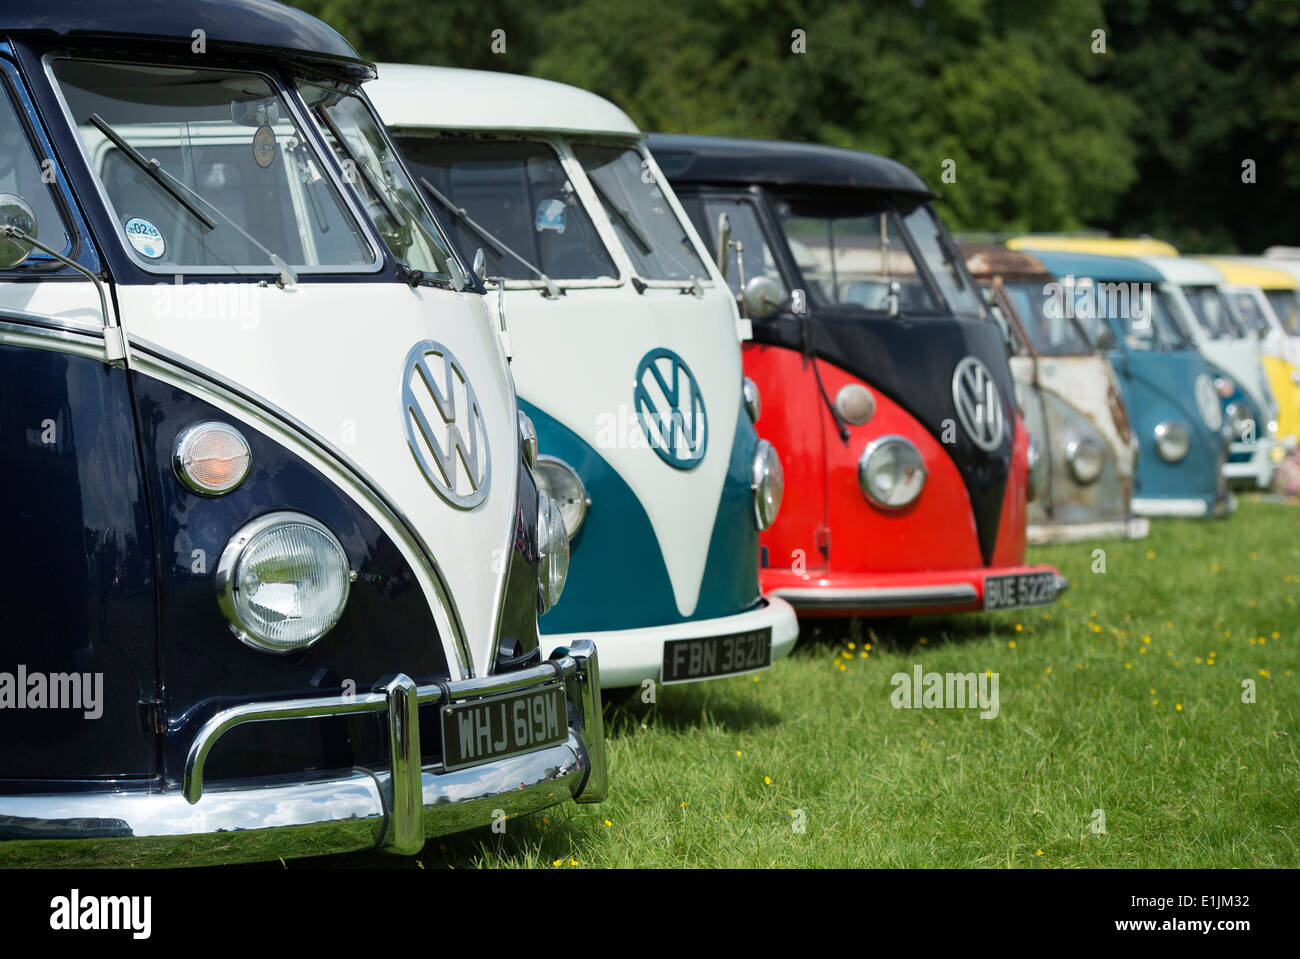 Line of VW Split Screen Volkswagen camper vans at a VW show. England Stock Photo